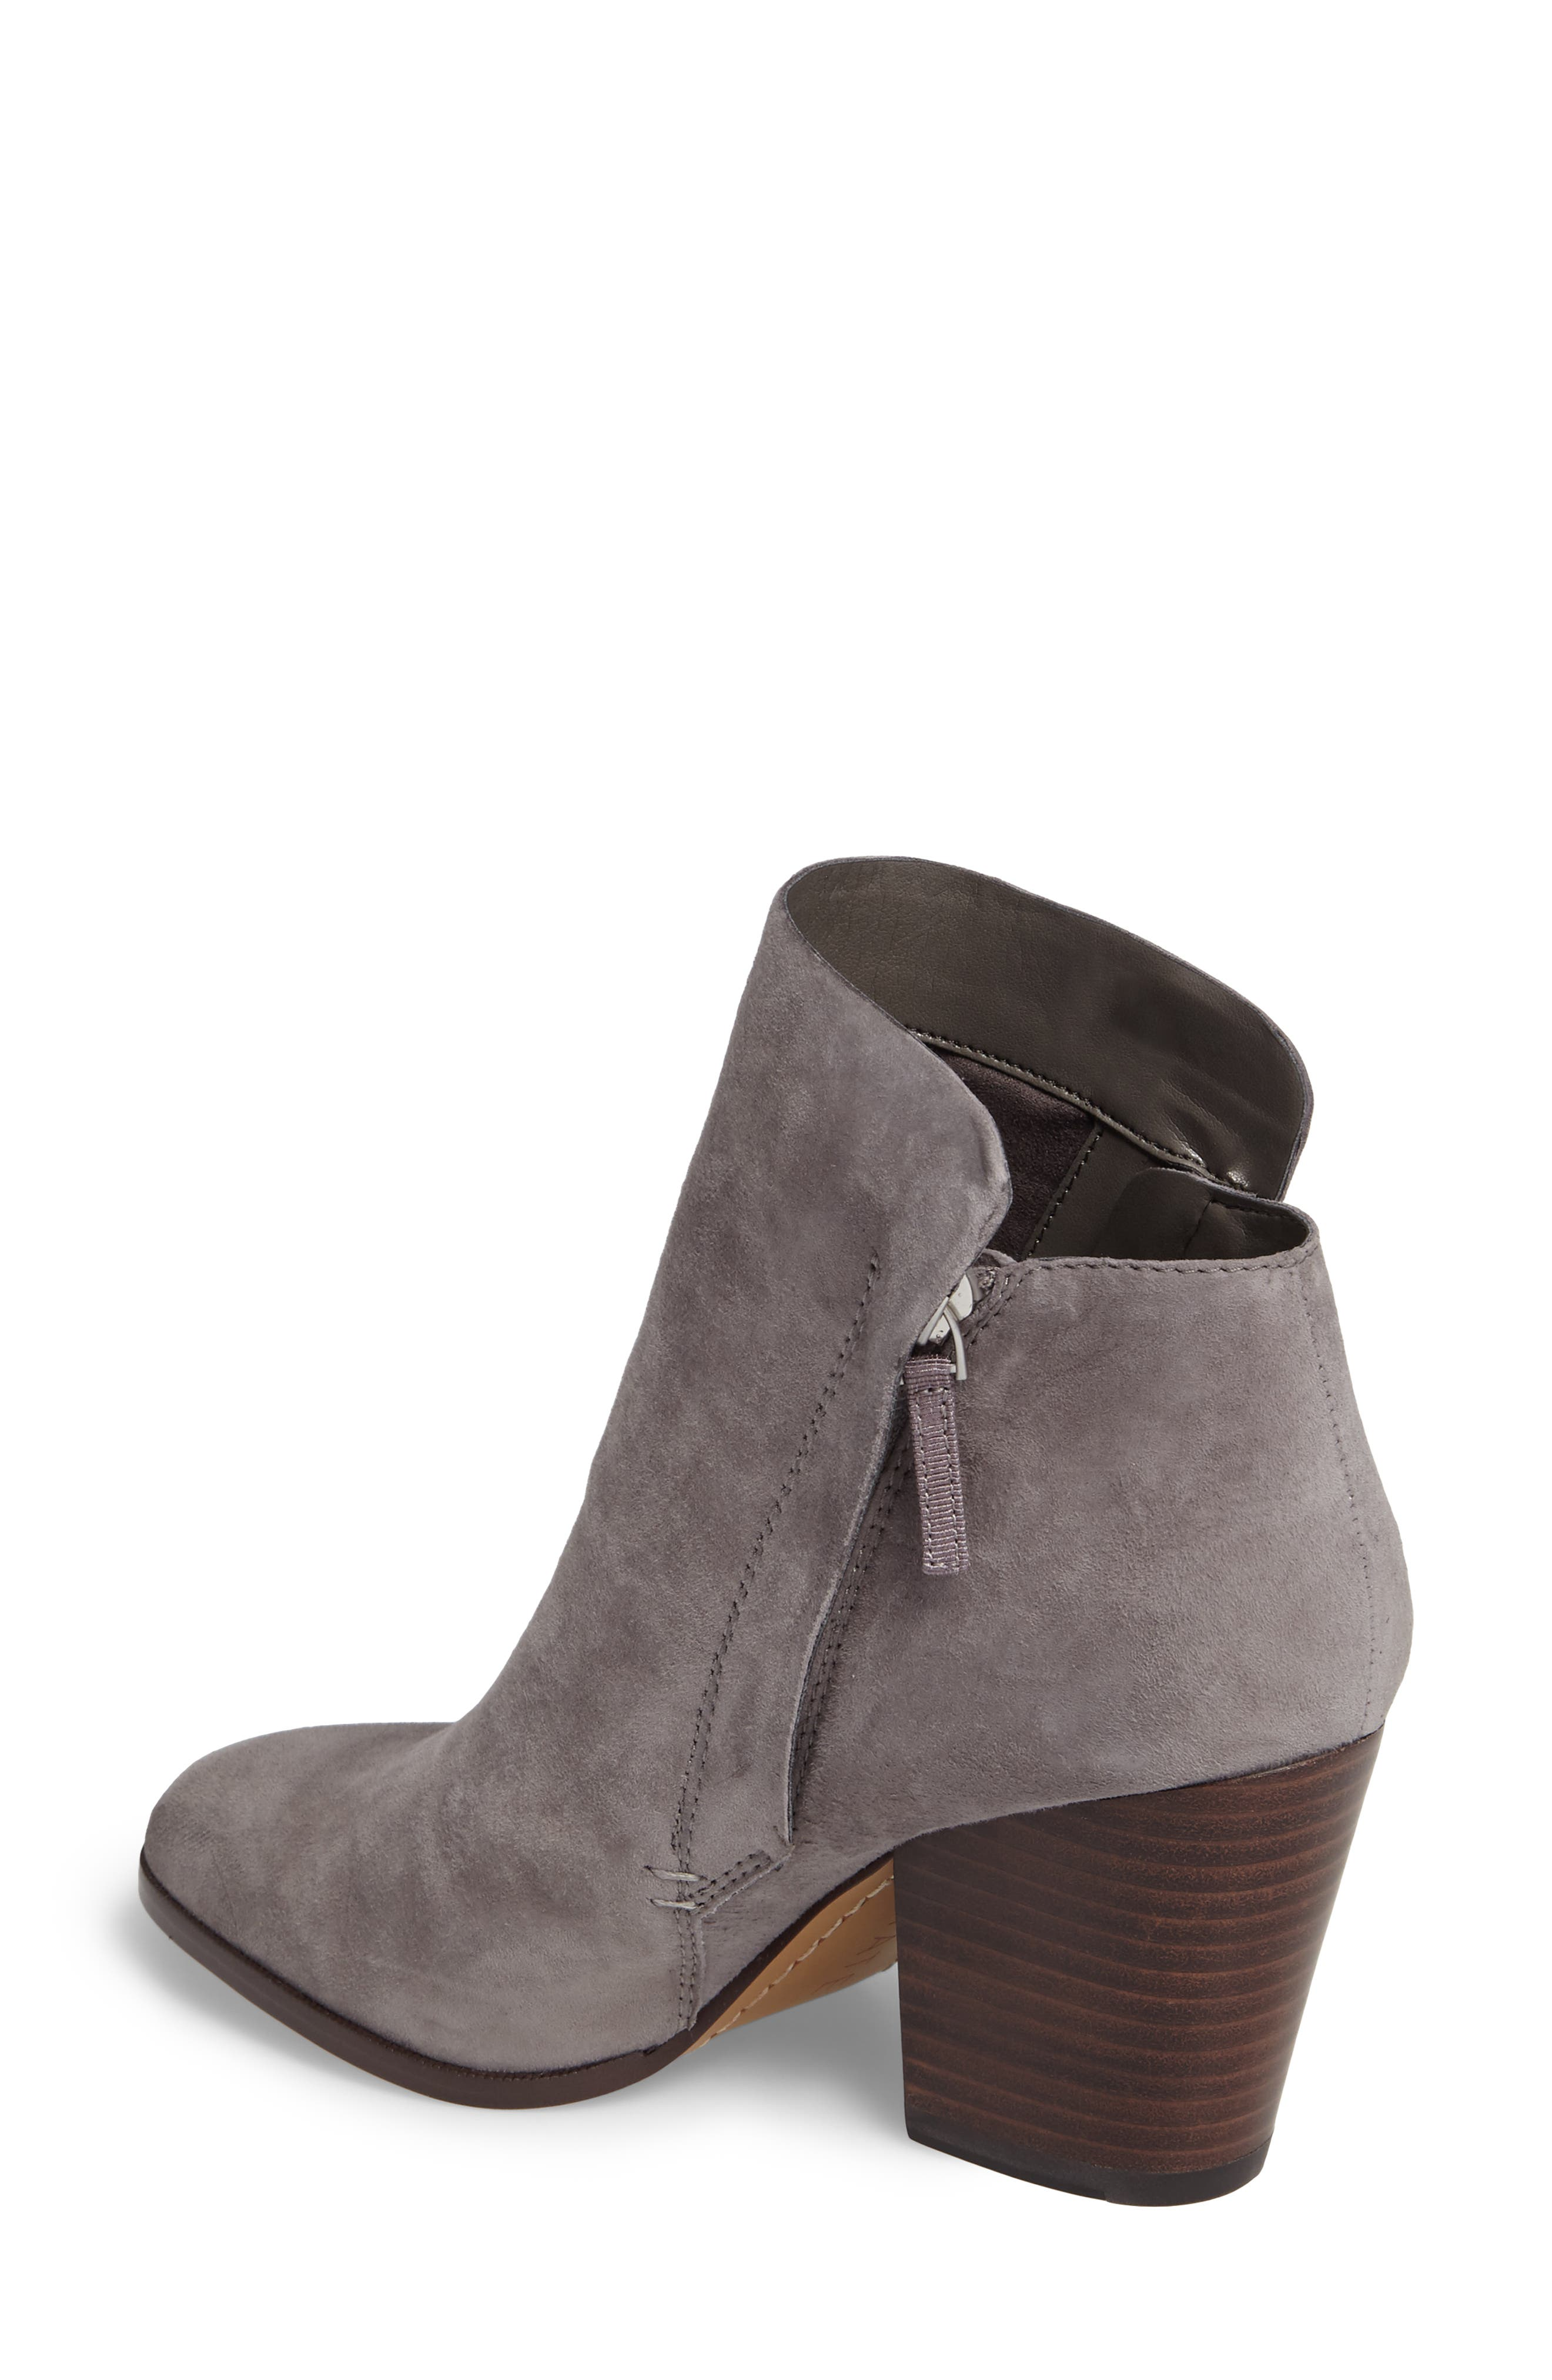 Taila Angle Zip Bootie,                             Alternate thumbnail 4, color,